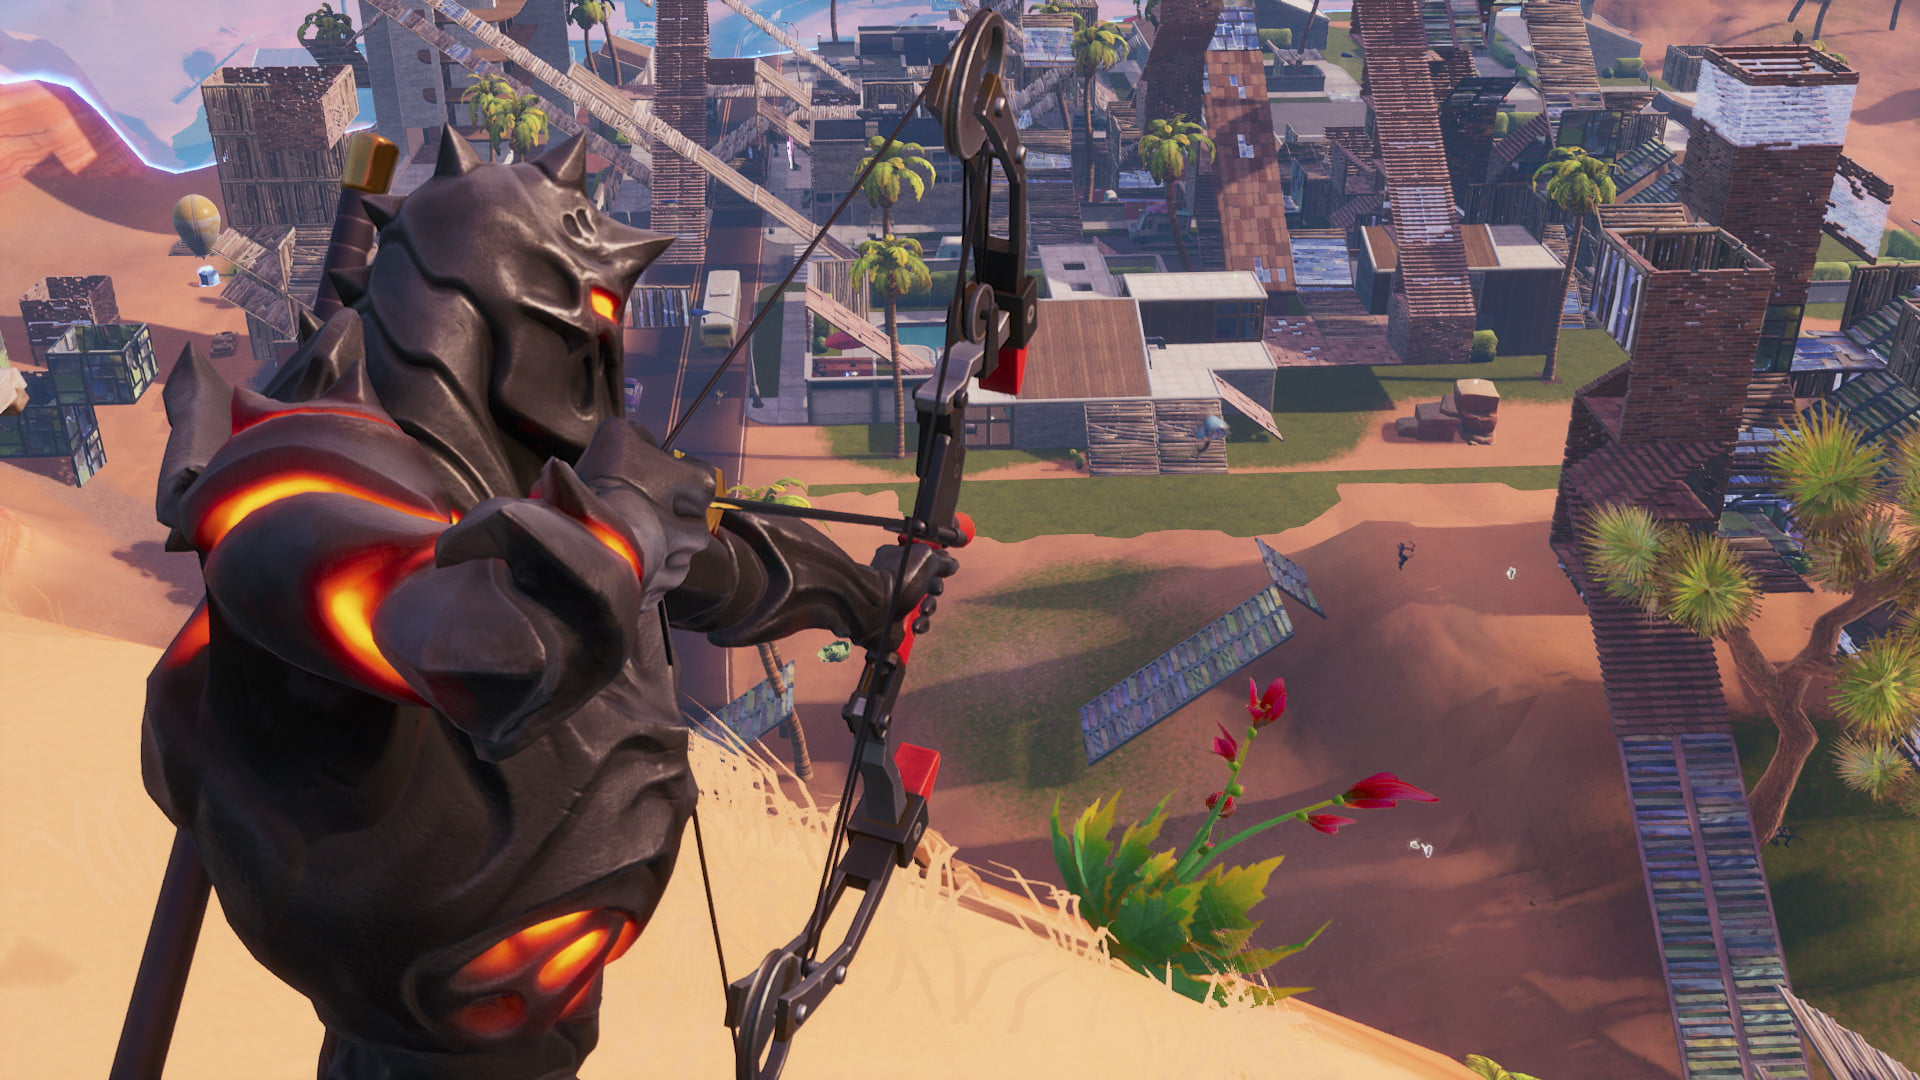 Fortnite Review A Year Later It Remains A Battle Royale For The